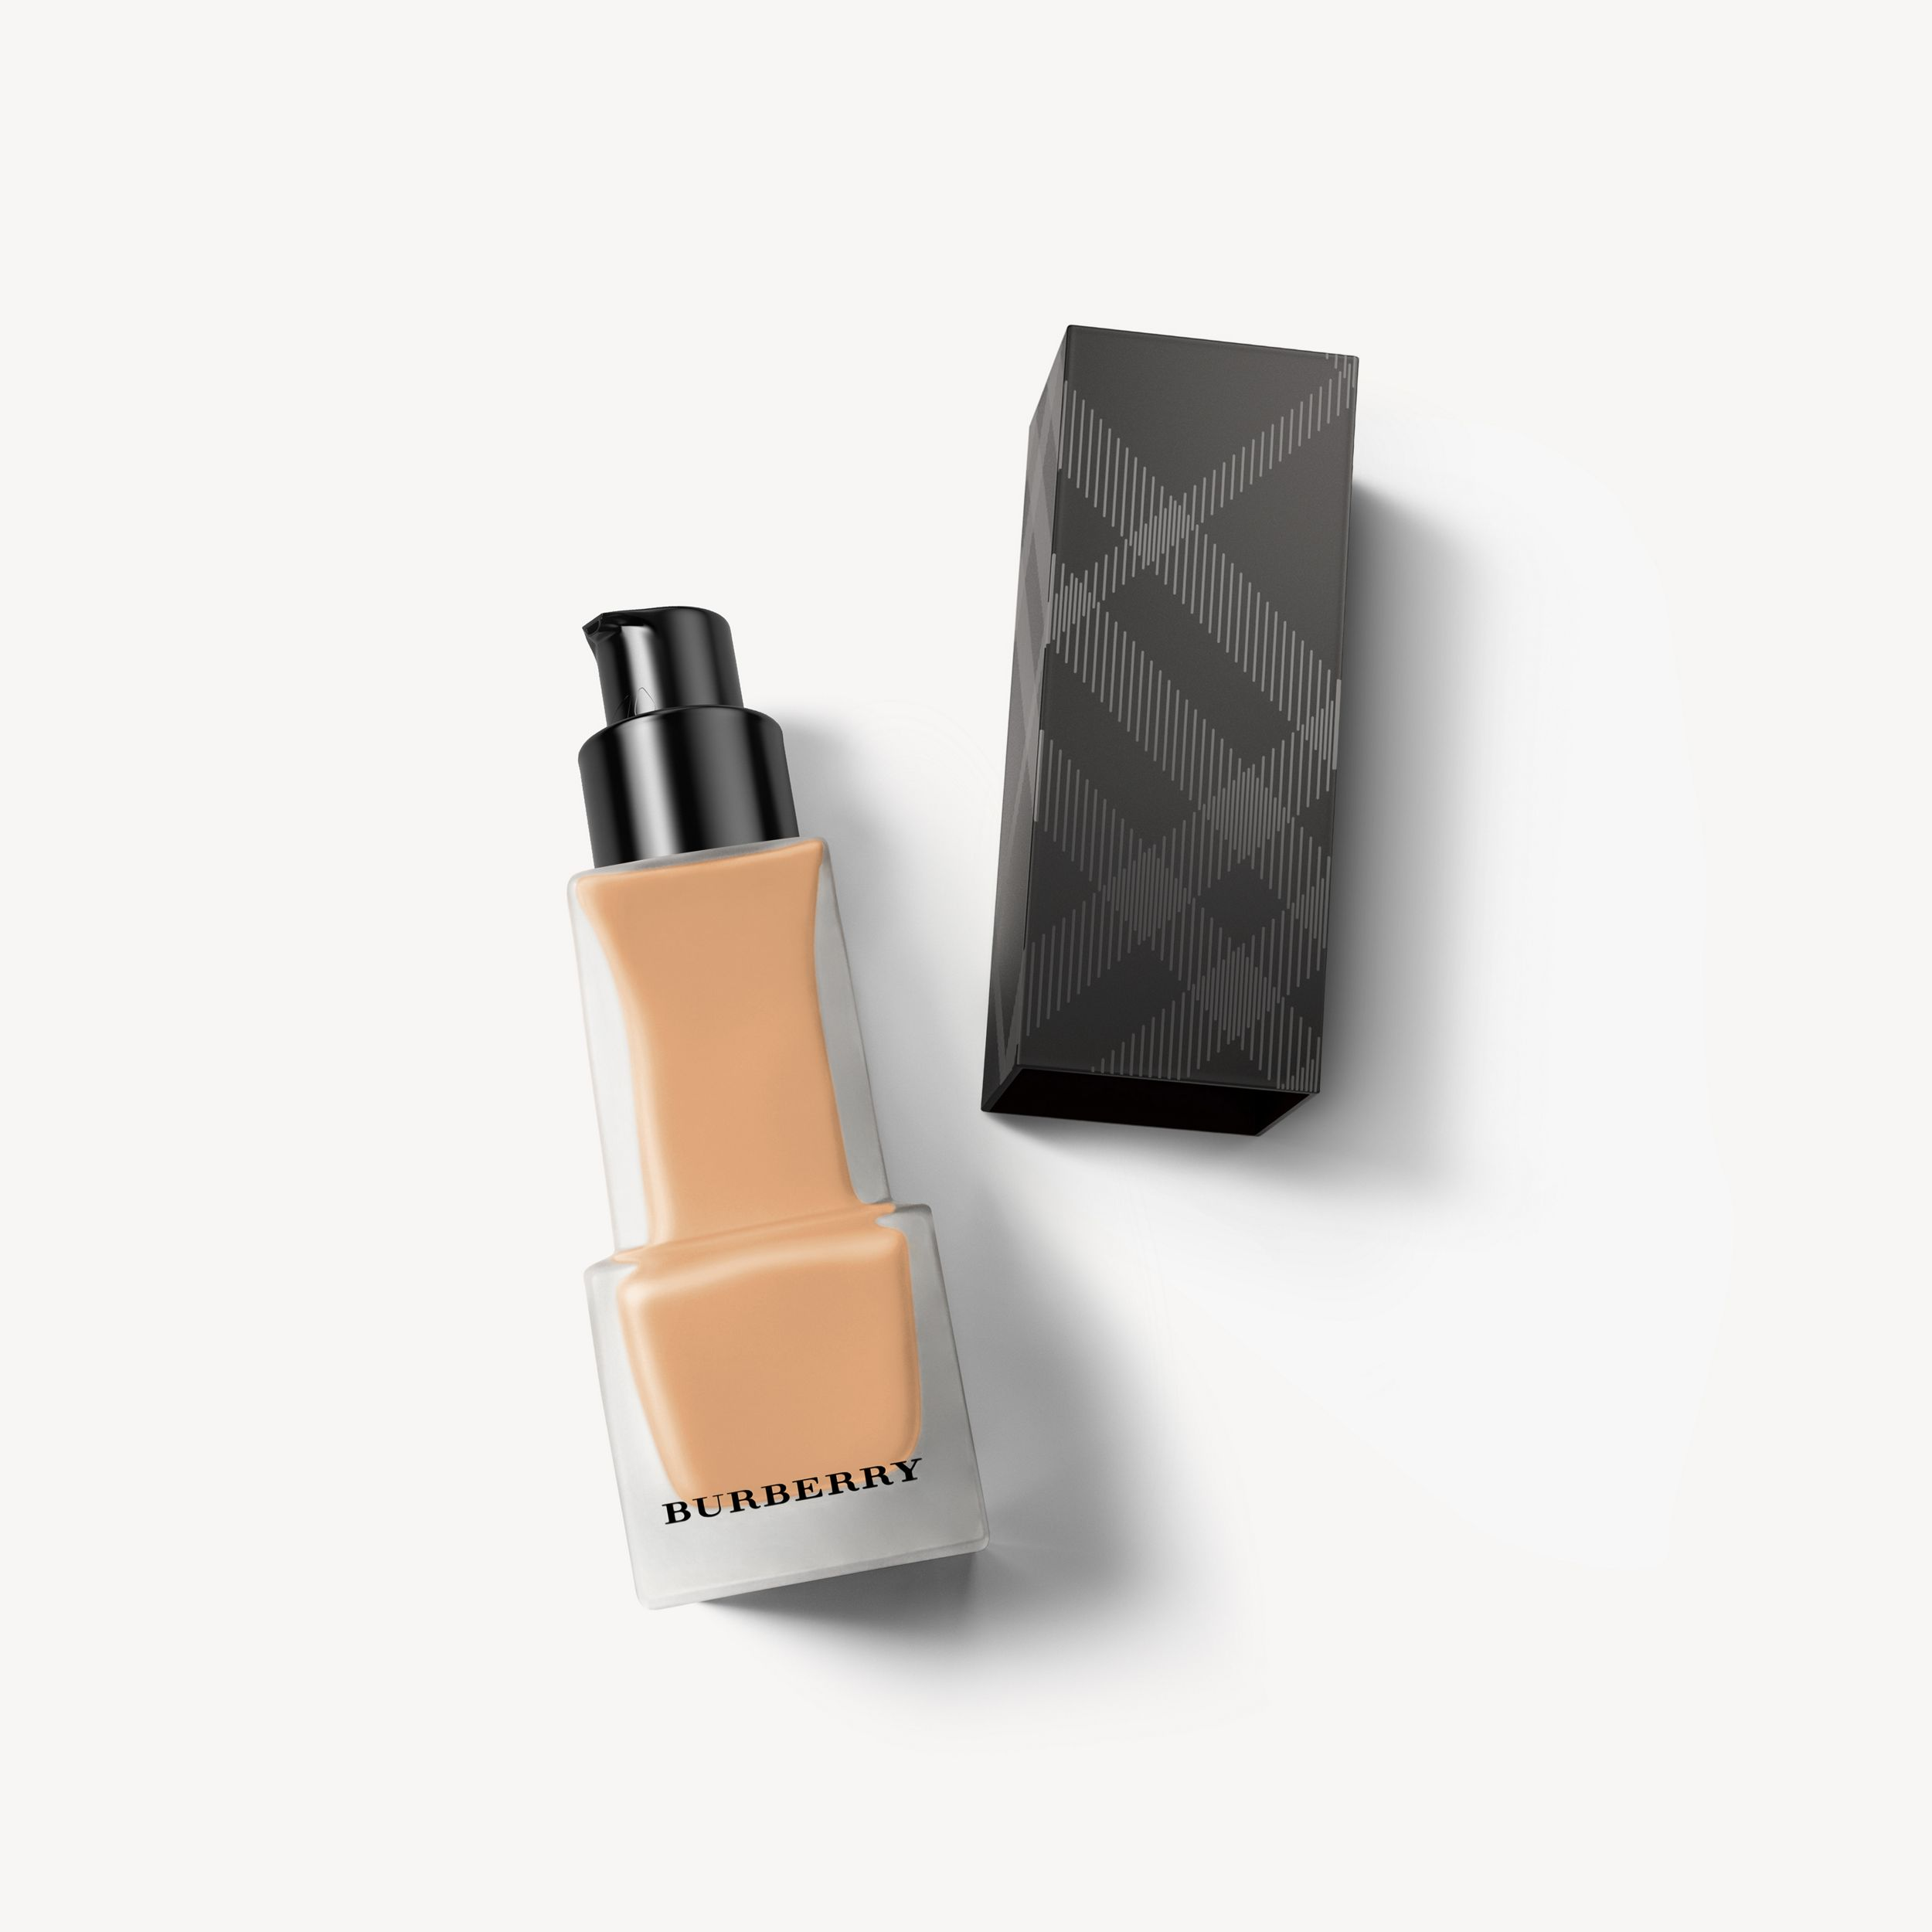 Matte Glow Liquid Foundation – 50 Medium Neutral - Women | Burberry Australia - 1